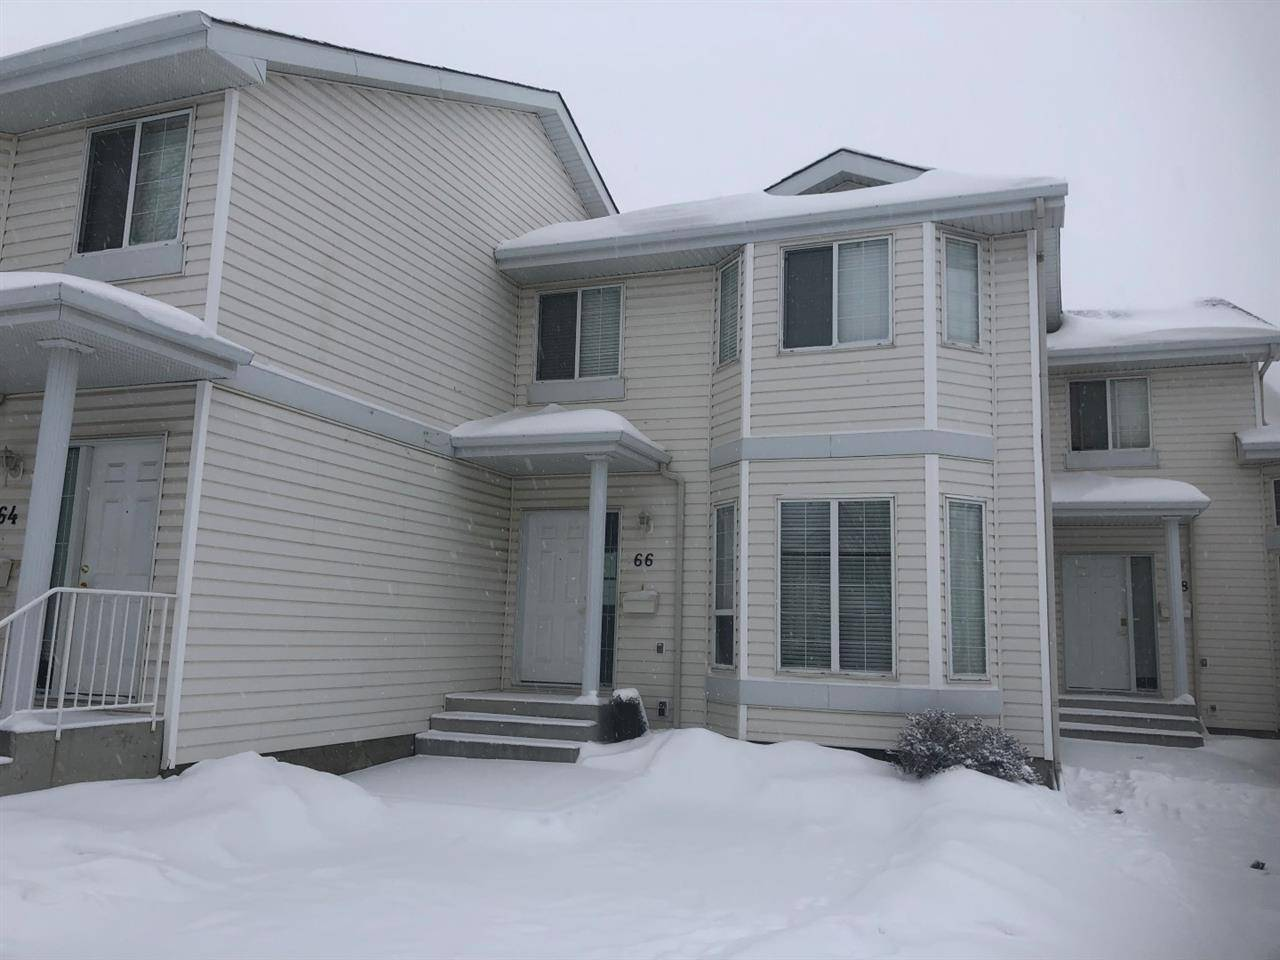 Townhouse for sale at 3380 28a Ave Nw Unit 66 Edmonton Alberta - MLS: E4184696